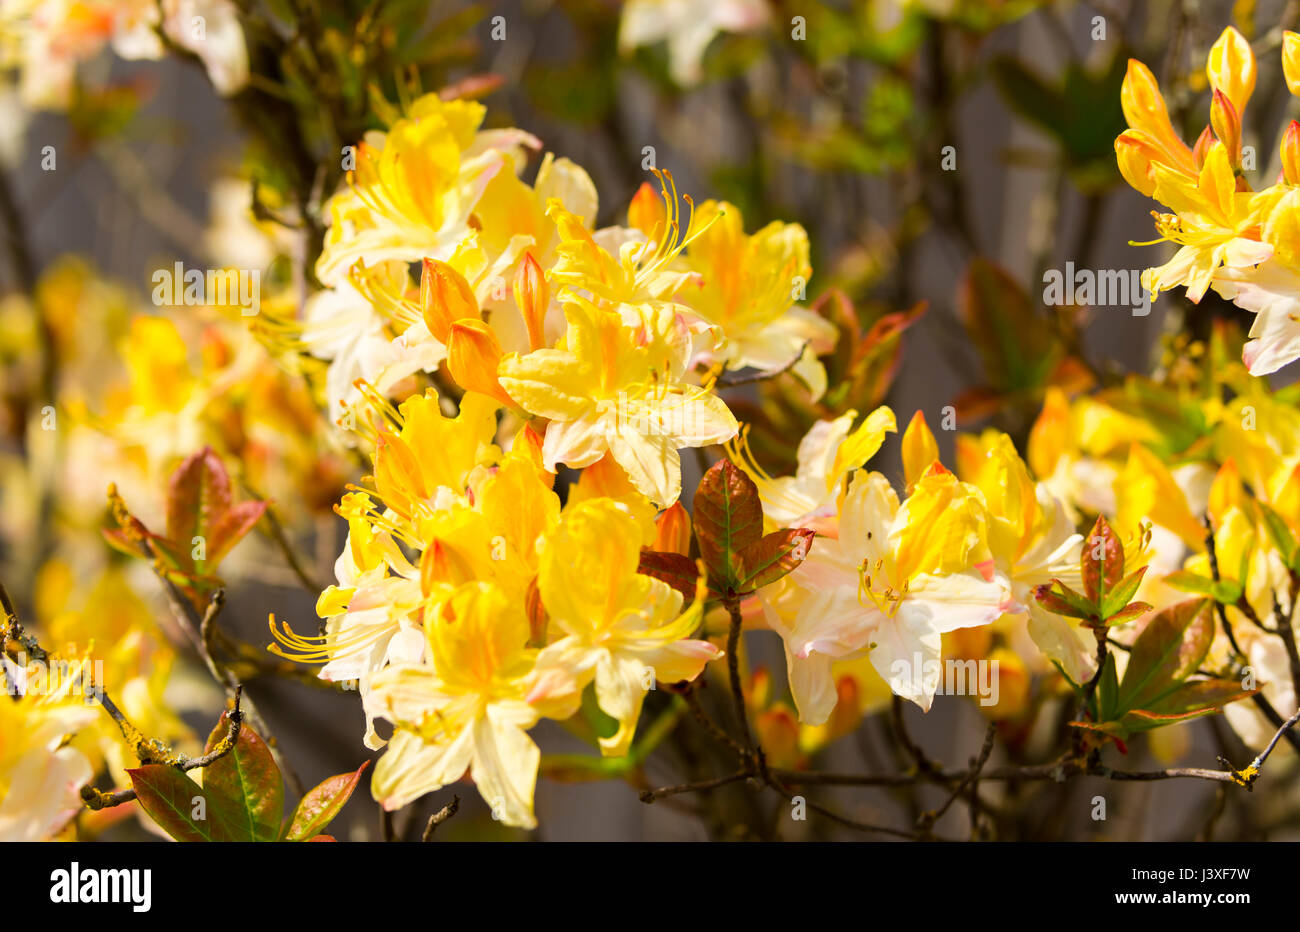 Yellow Flowering Shrub Stock Photos Yellow Flowering Shrub Stock